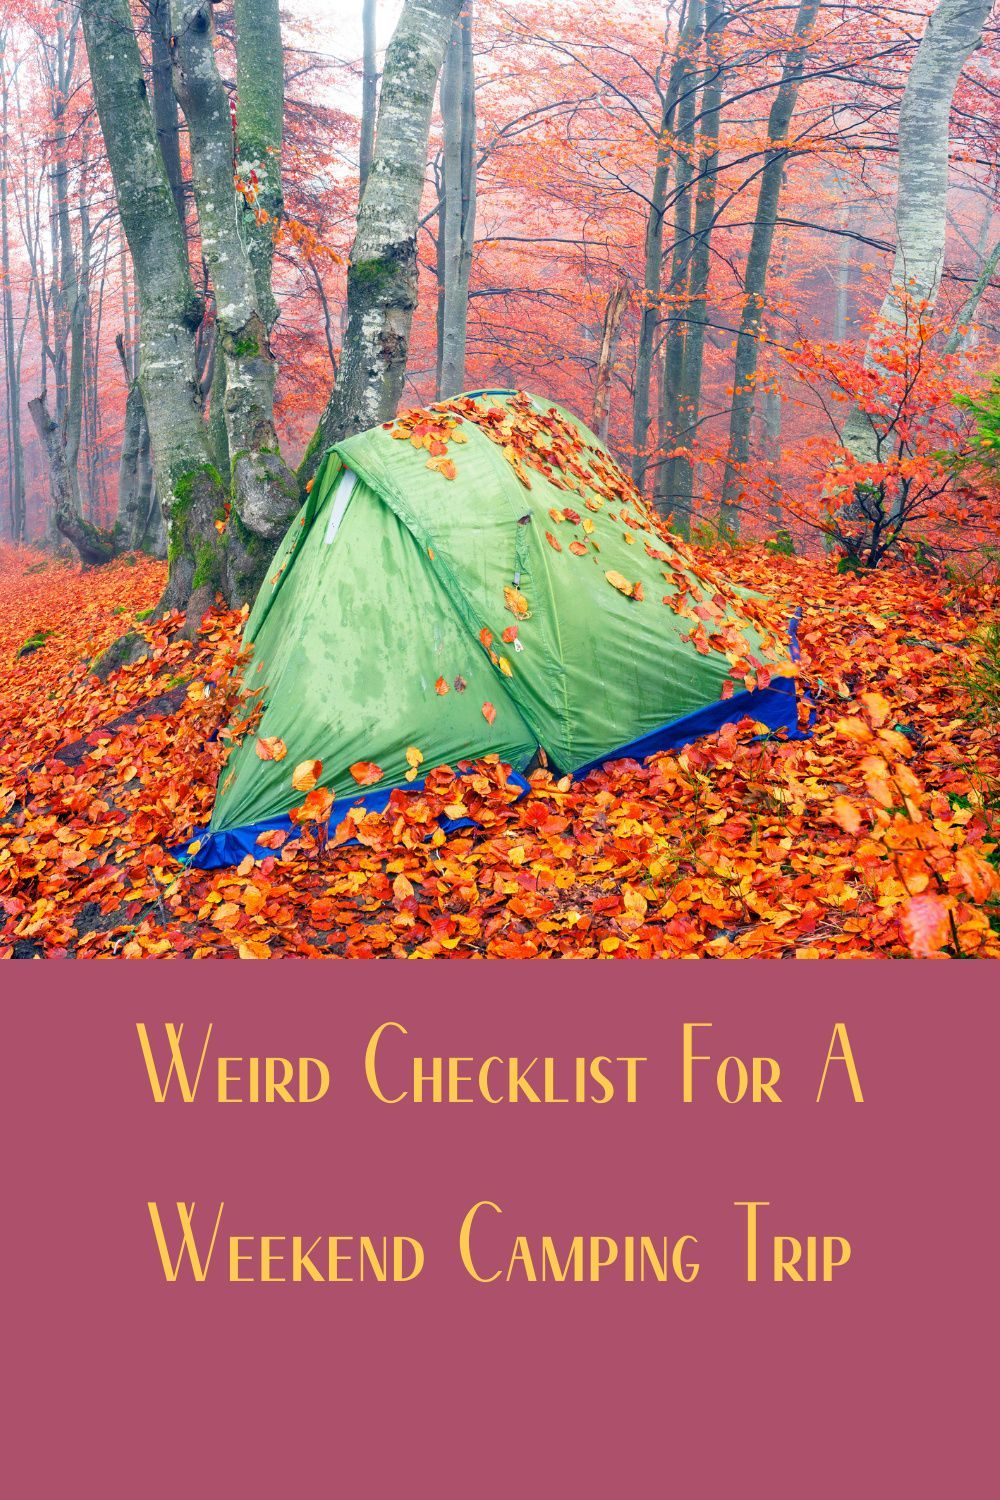 5 Point Checklist For A 2 Night Camping Trip Weekend Camping Trip Camping Trips Trip